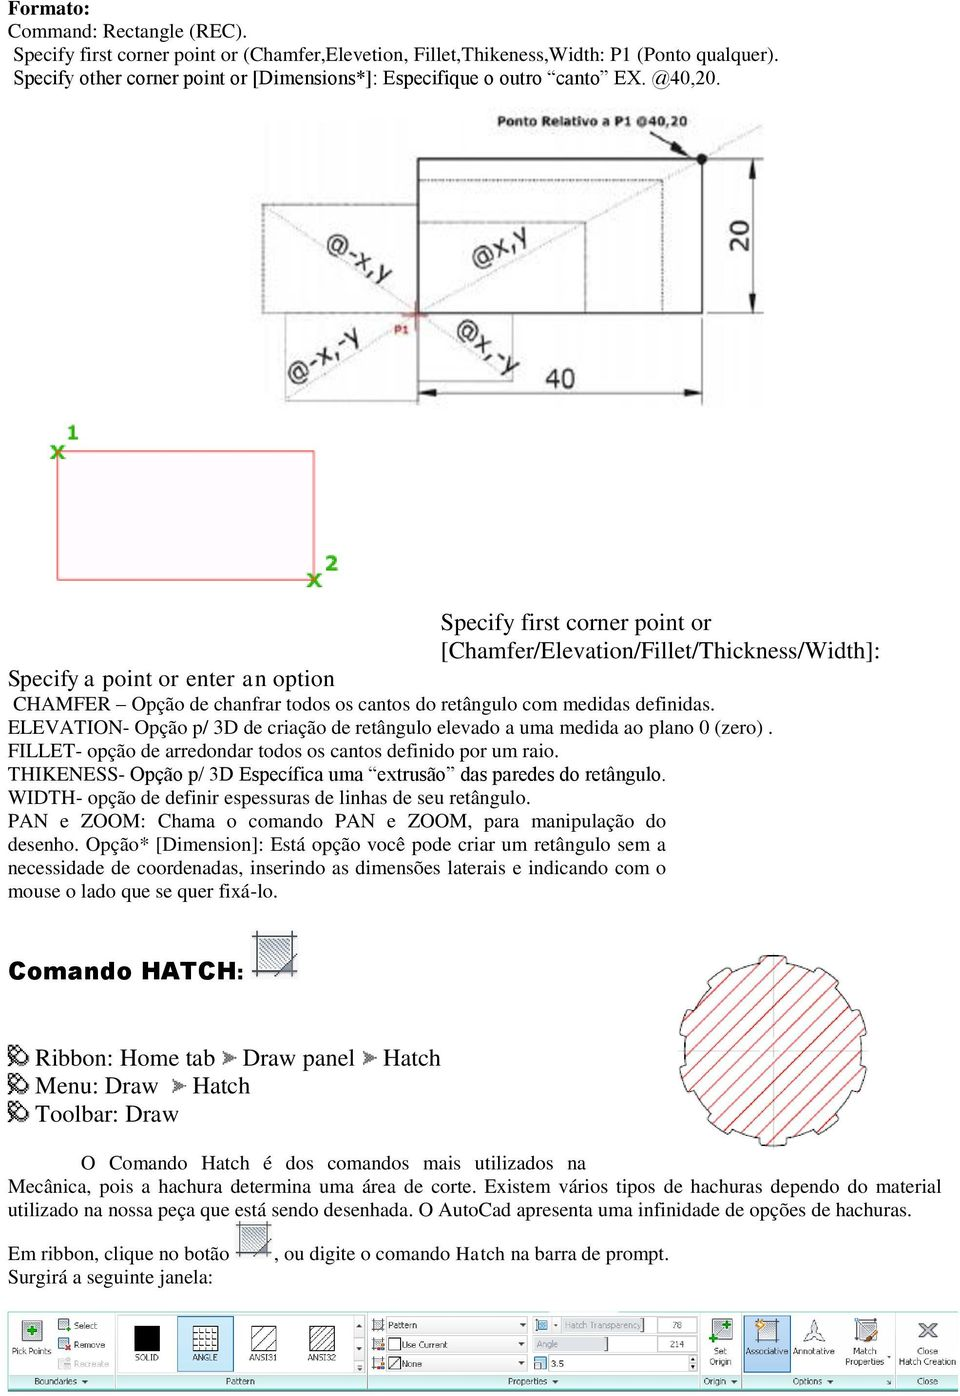 Specify first corner point or [Chamfer/Elevation/Fillet/Thickness/Width]: Specify a point or enter an option CHAMFER Opção de chanfrar todos os cantos do retângulo com medidas definidas.